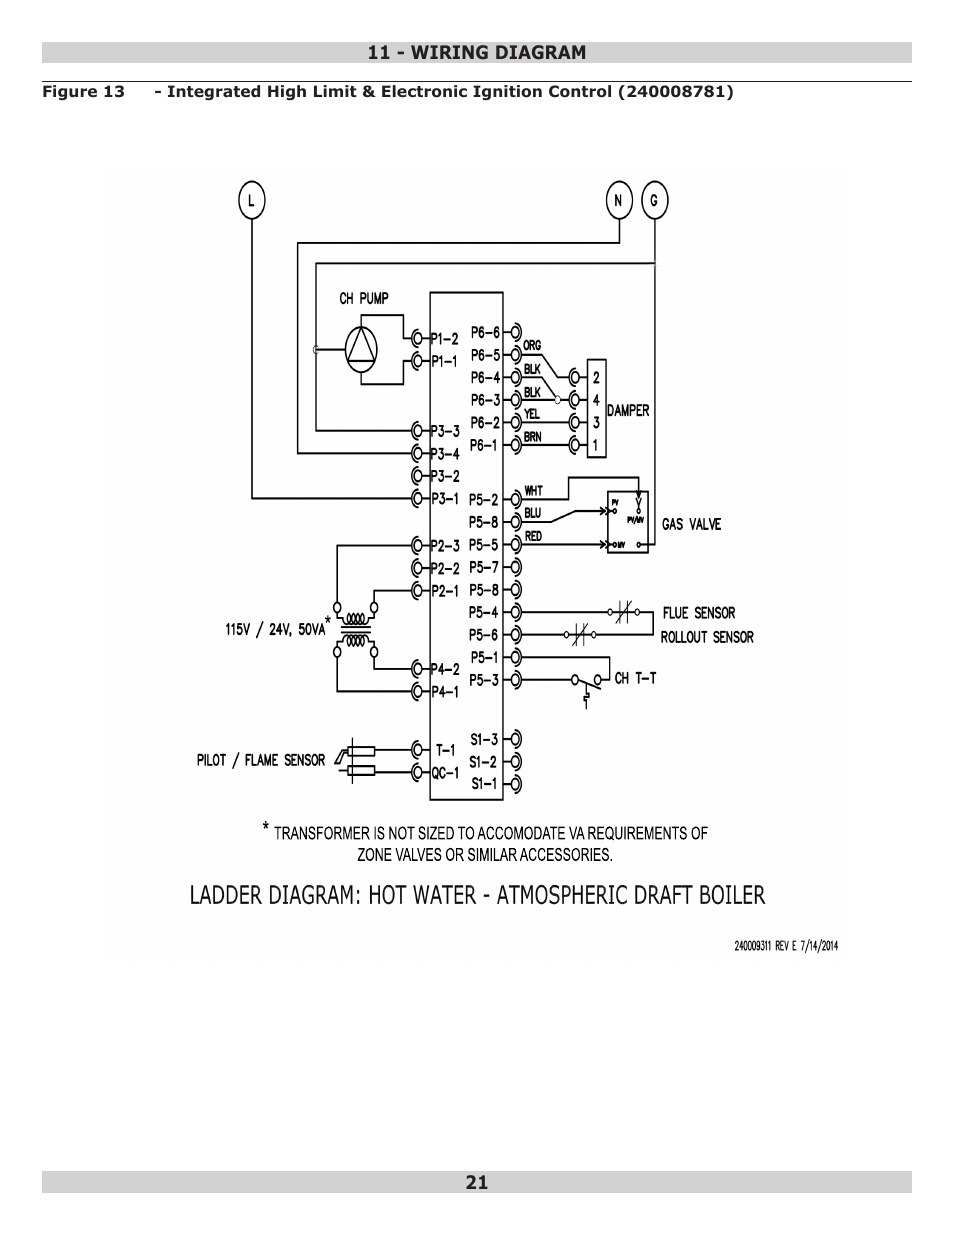 Pennco 15b045fe user manual page 21 32 also for 15b070fe pennco 15b045fe user manual page 21 32 also for 15b070fe 15b096fe 15b120fe 15b145fe 15b170fe 15b195fe 15b245fe 15b295fe swarovskicordoba Image collections